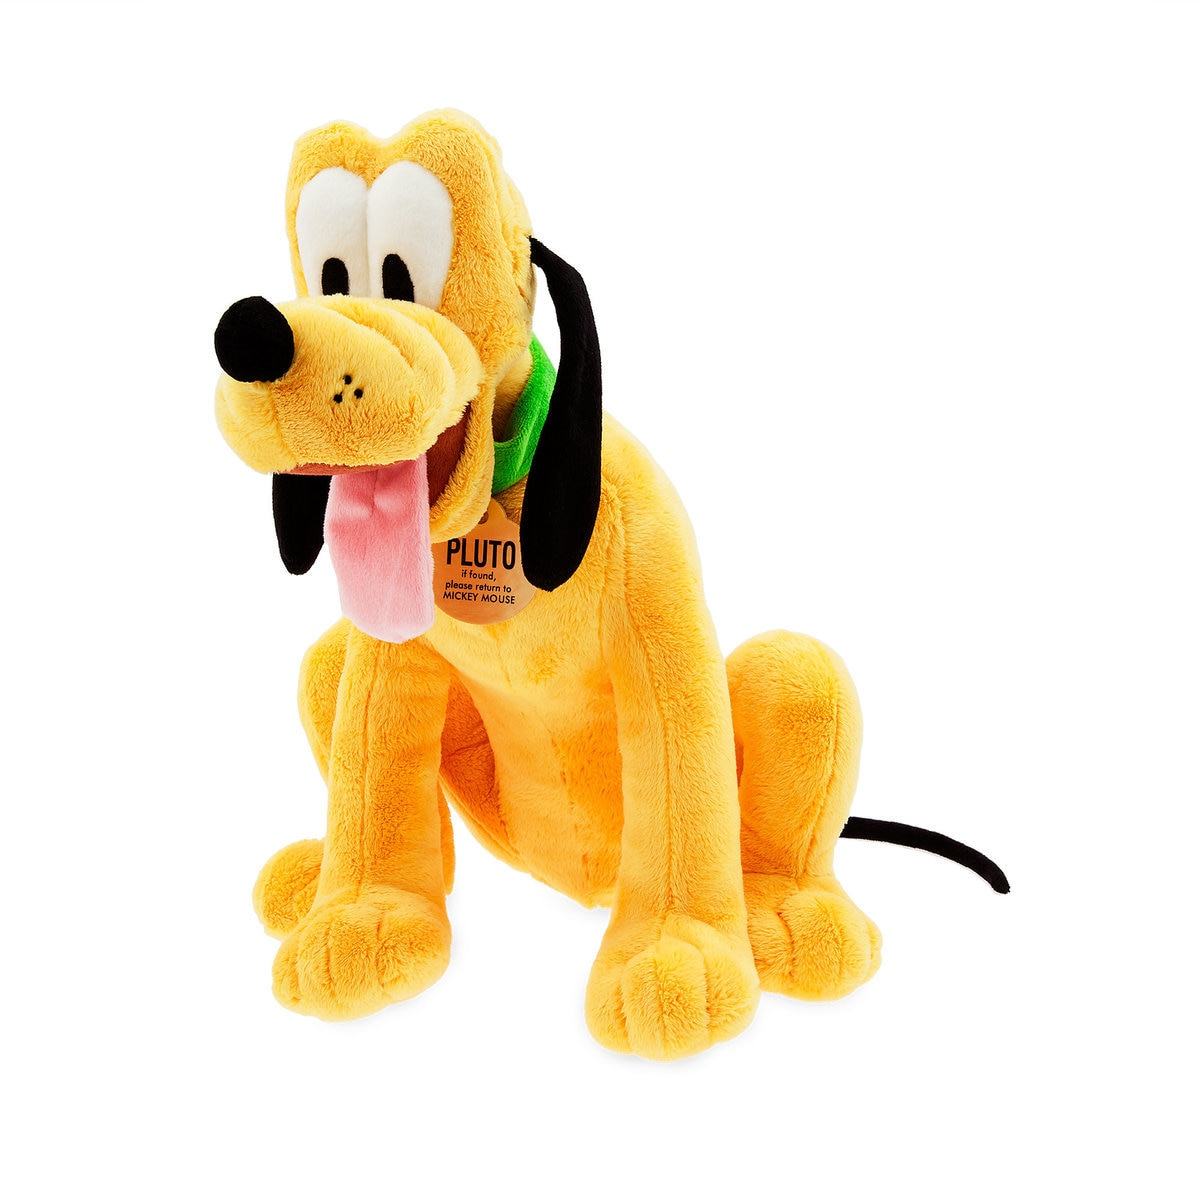 eacd1afcdee Product Image of Pluto Plush - Medium - 15 1 2   - Personalizable